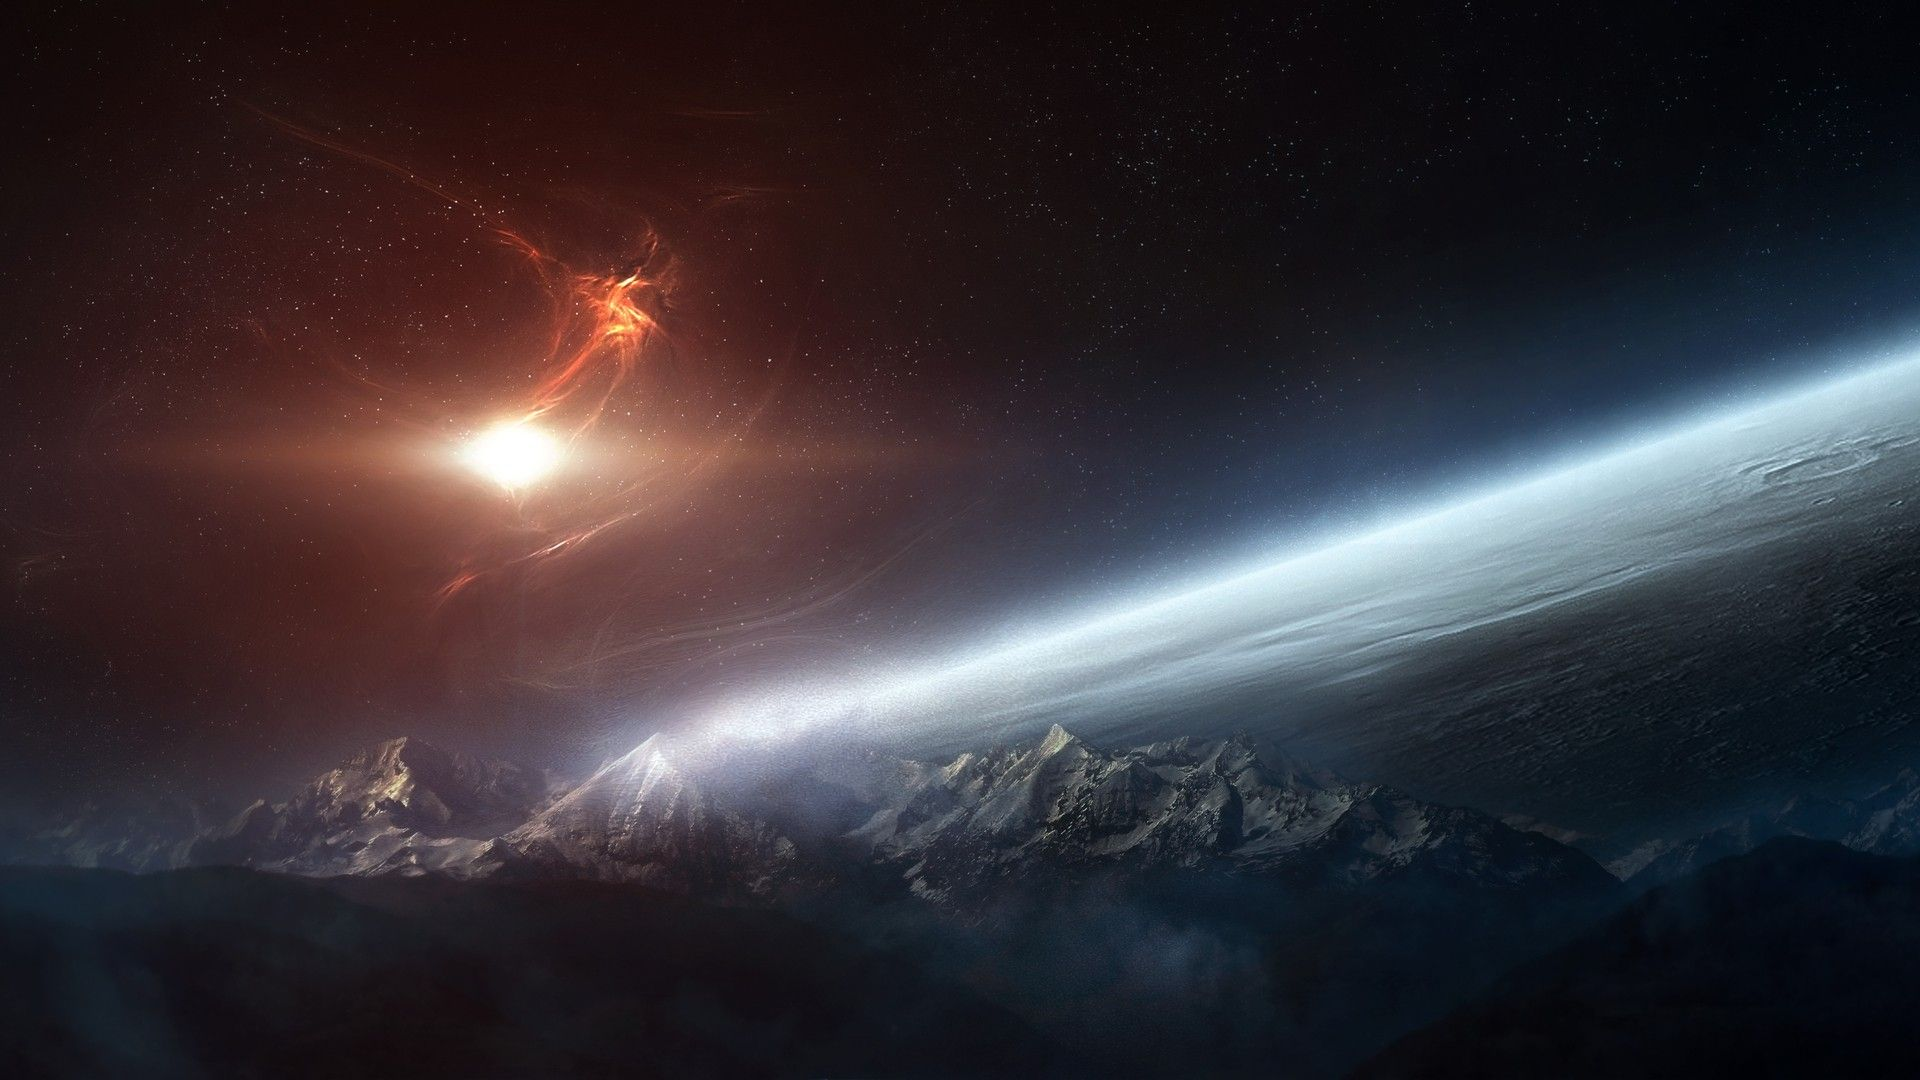 Space Wallpaper Outer Space HD Wallpaper FullHDWpp   Full 1920x1080